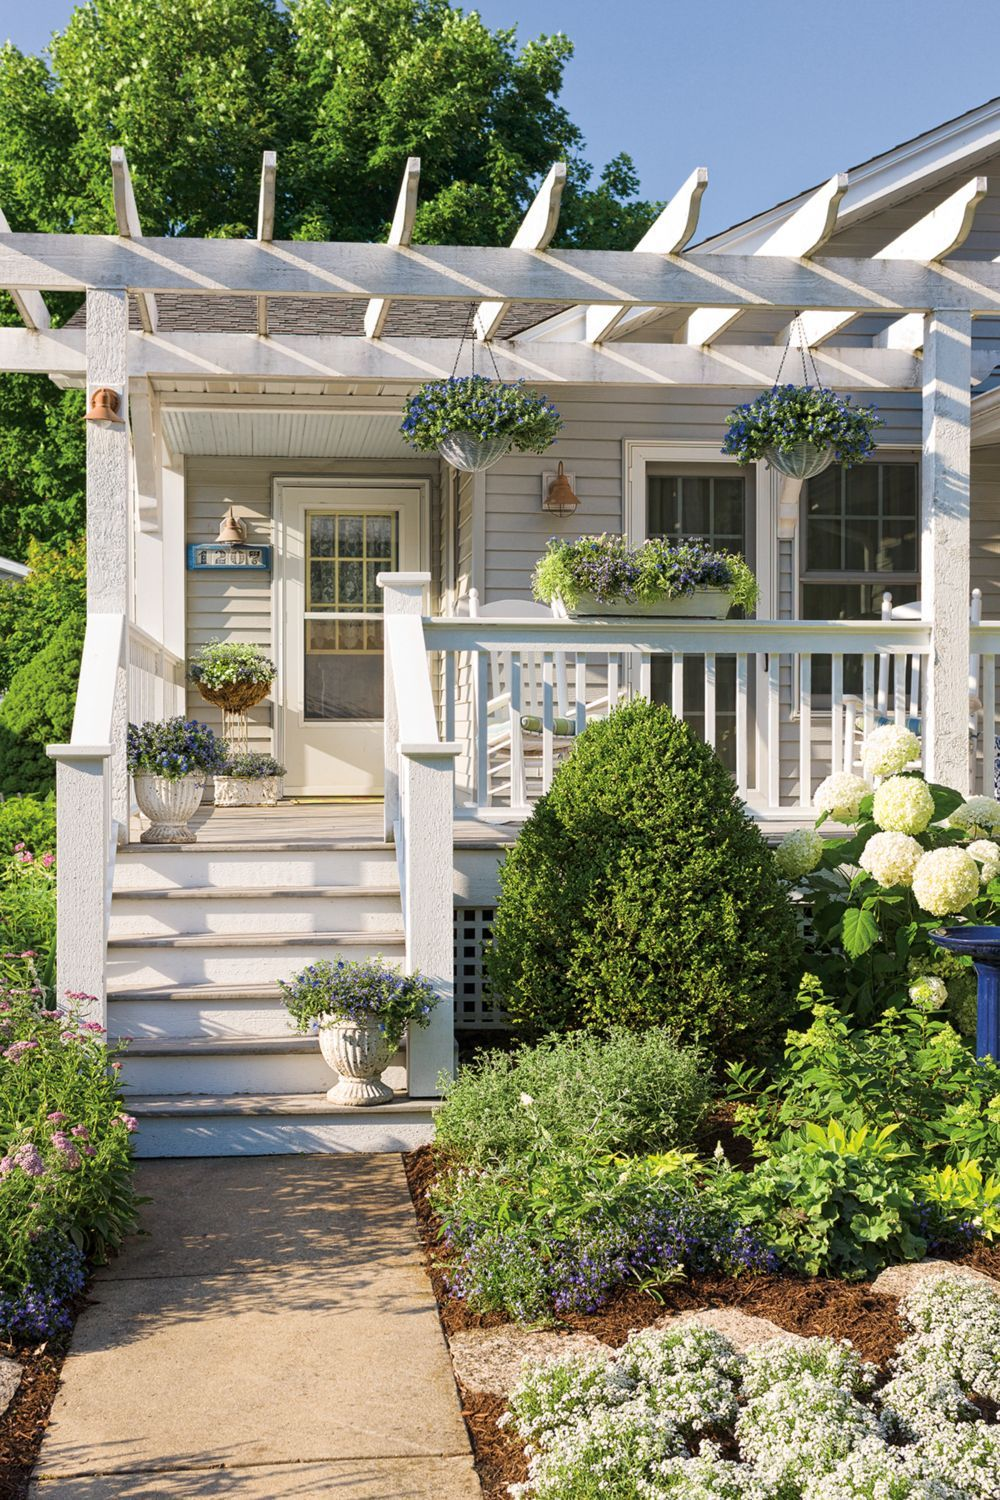 Back Porch Ideas That Will Add Value Appeal To Your Home Cottage Front Porches Porch Design Front Porch Decorating